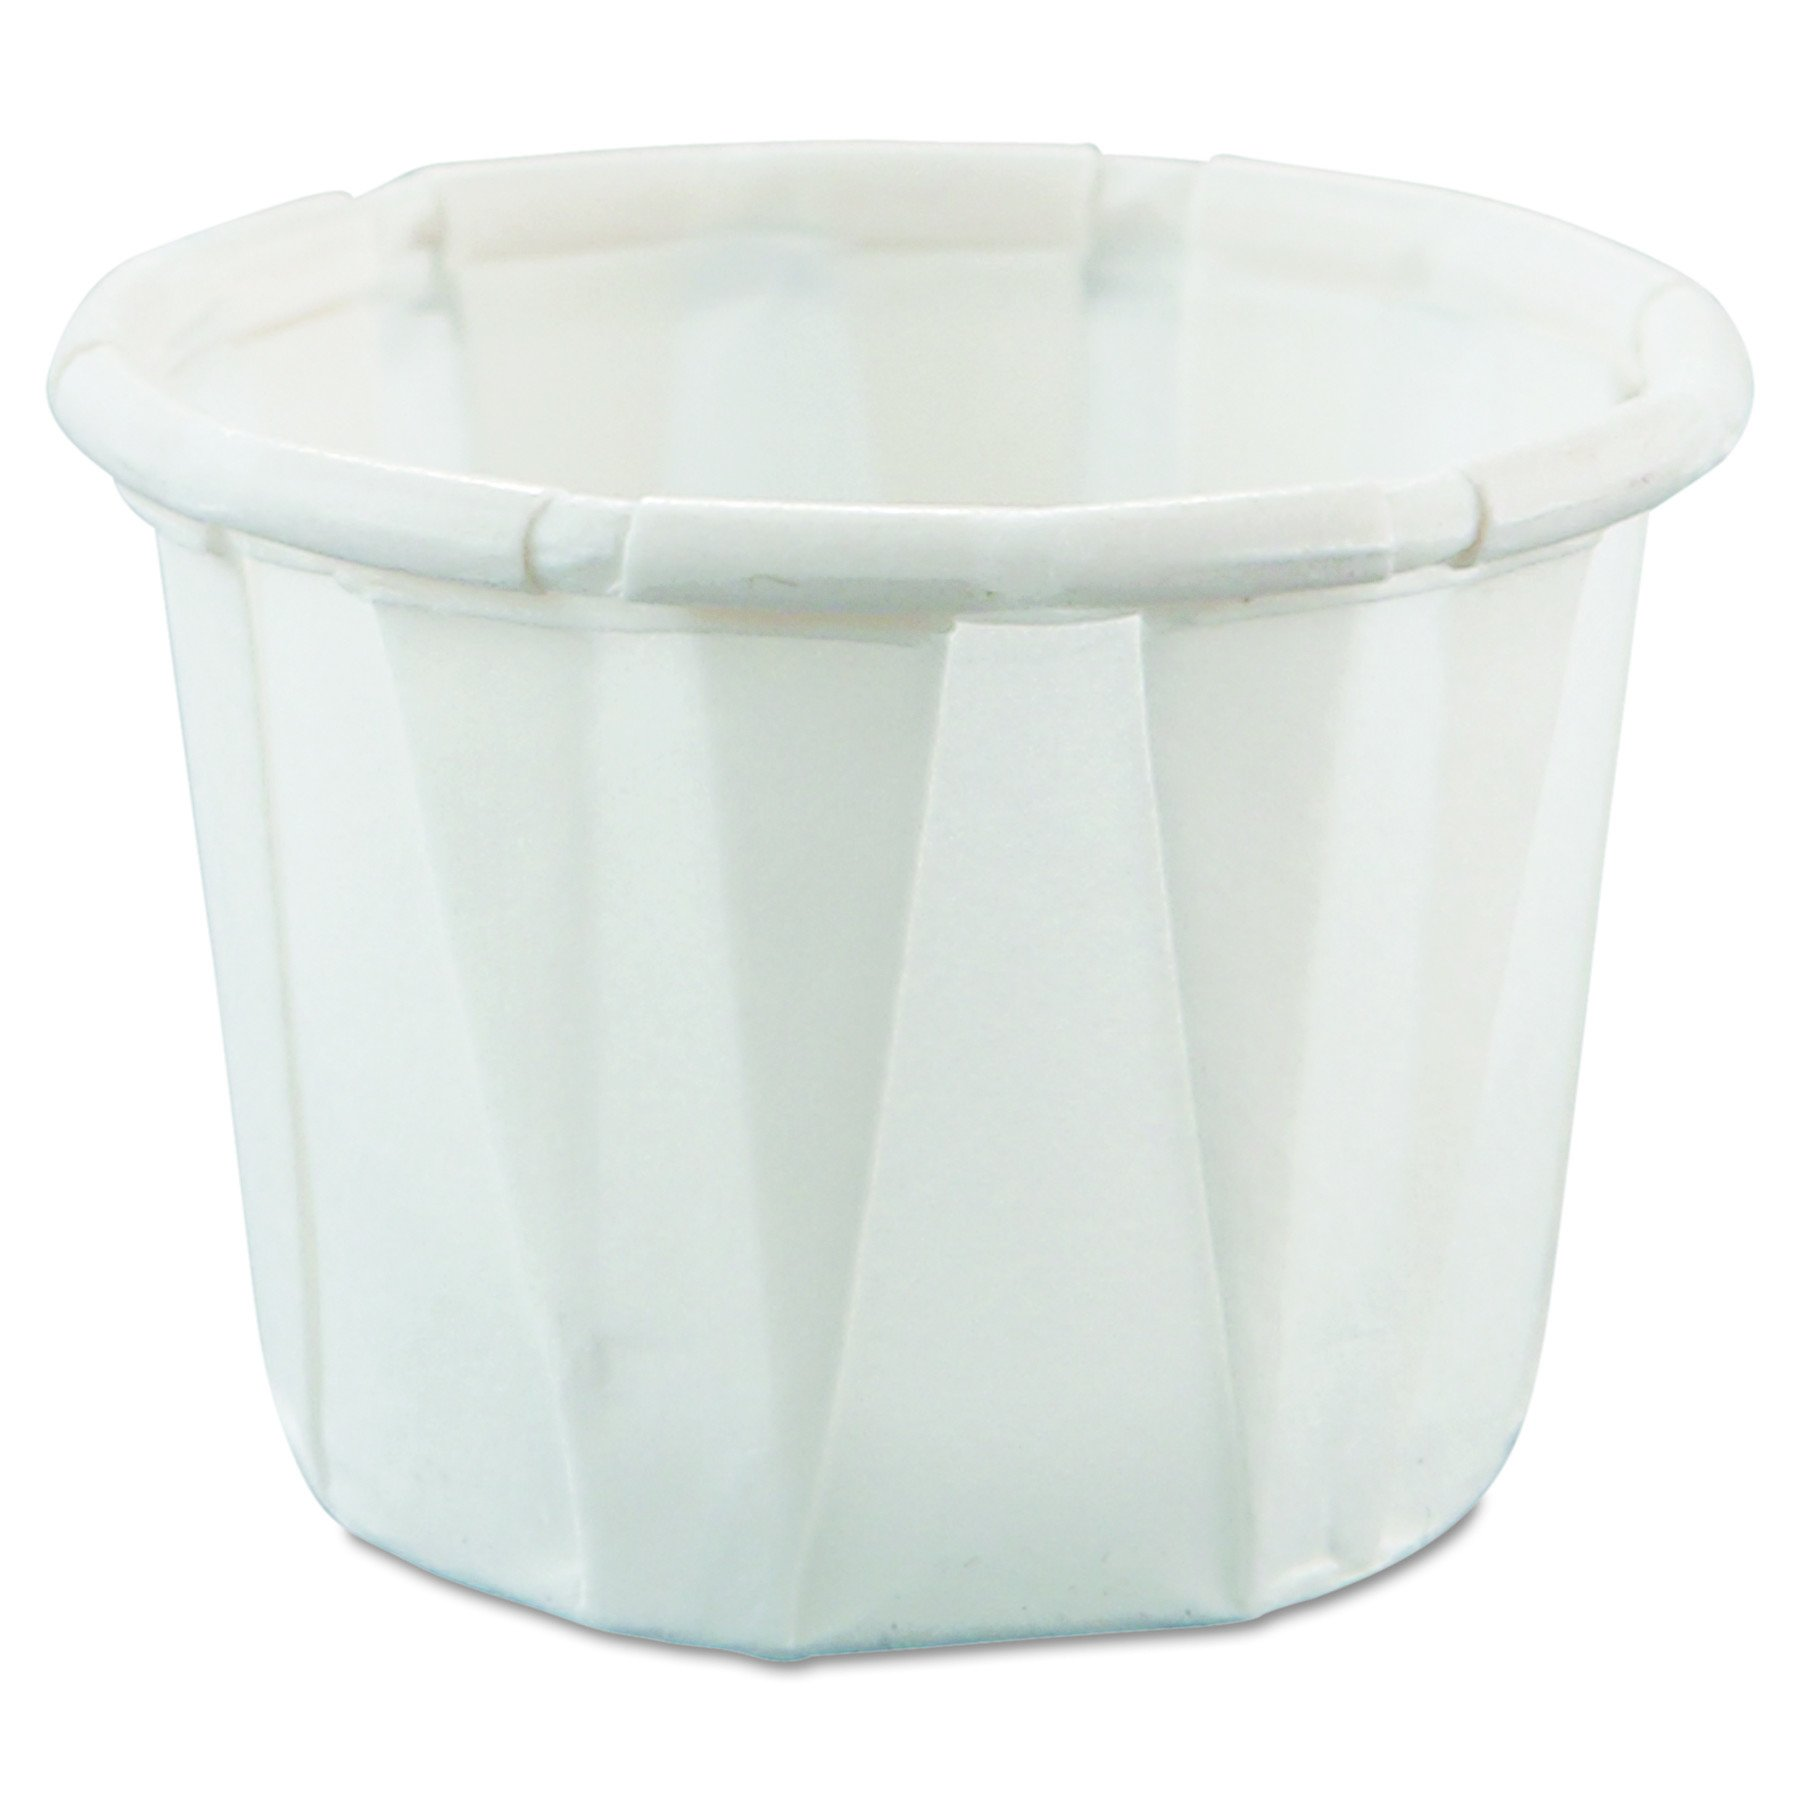 Solo 050-2050 0.5 oz Treated Paper Portion Cup (Case of 5000) by Solo Foodservice